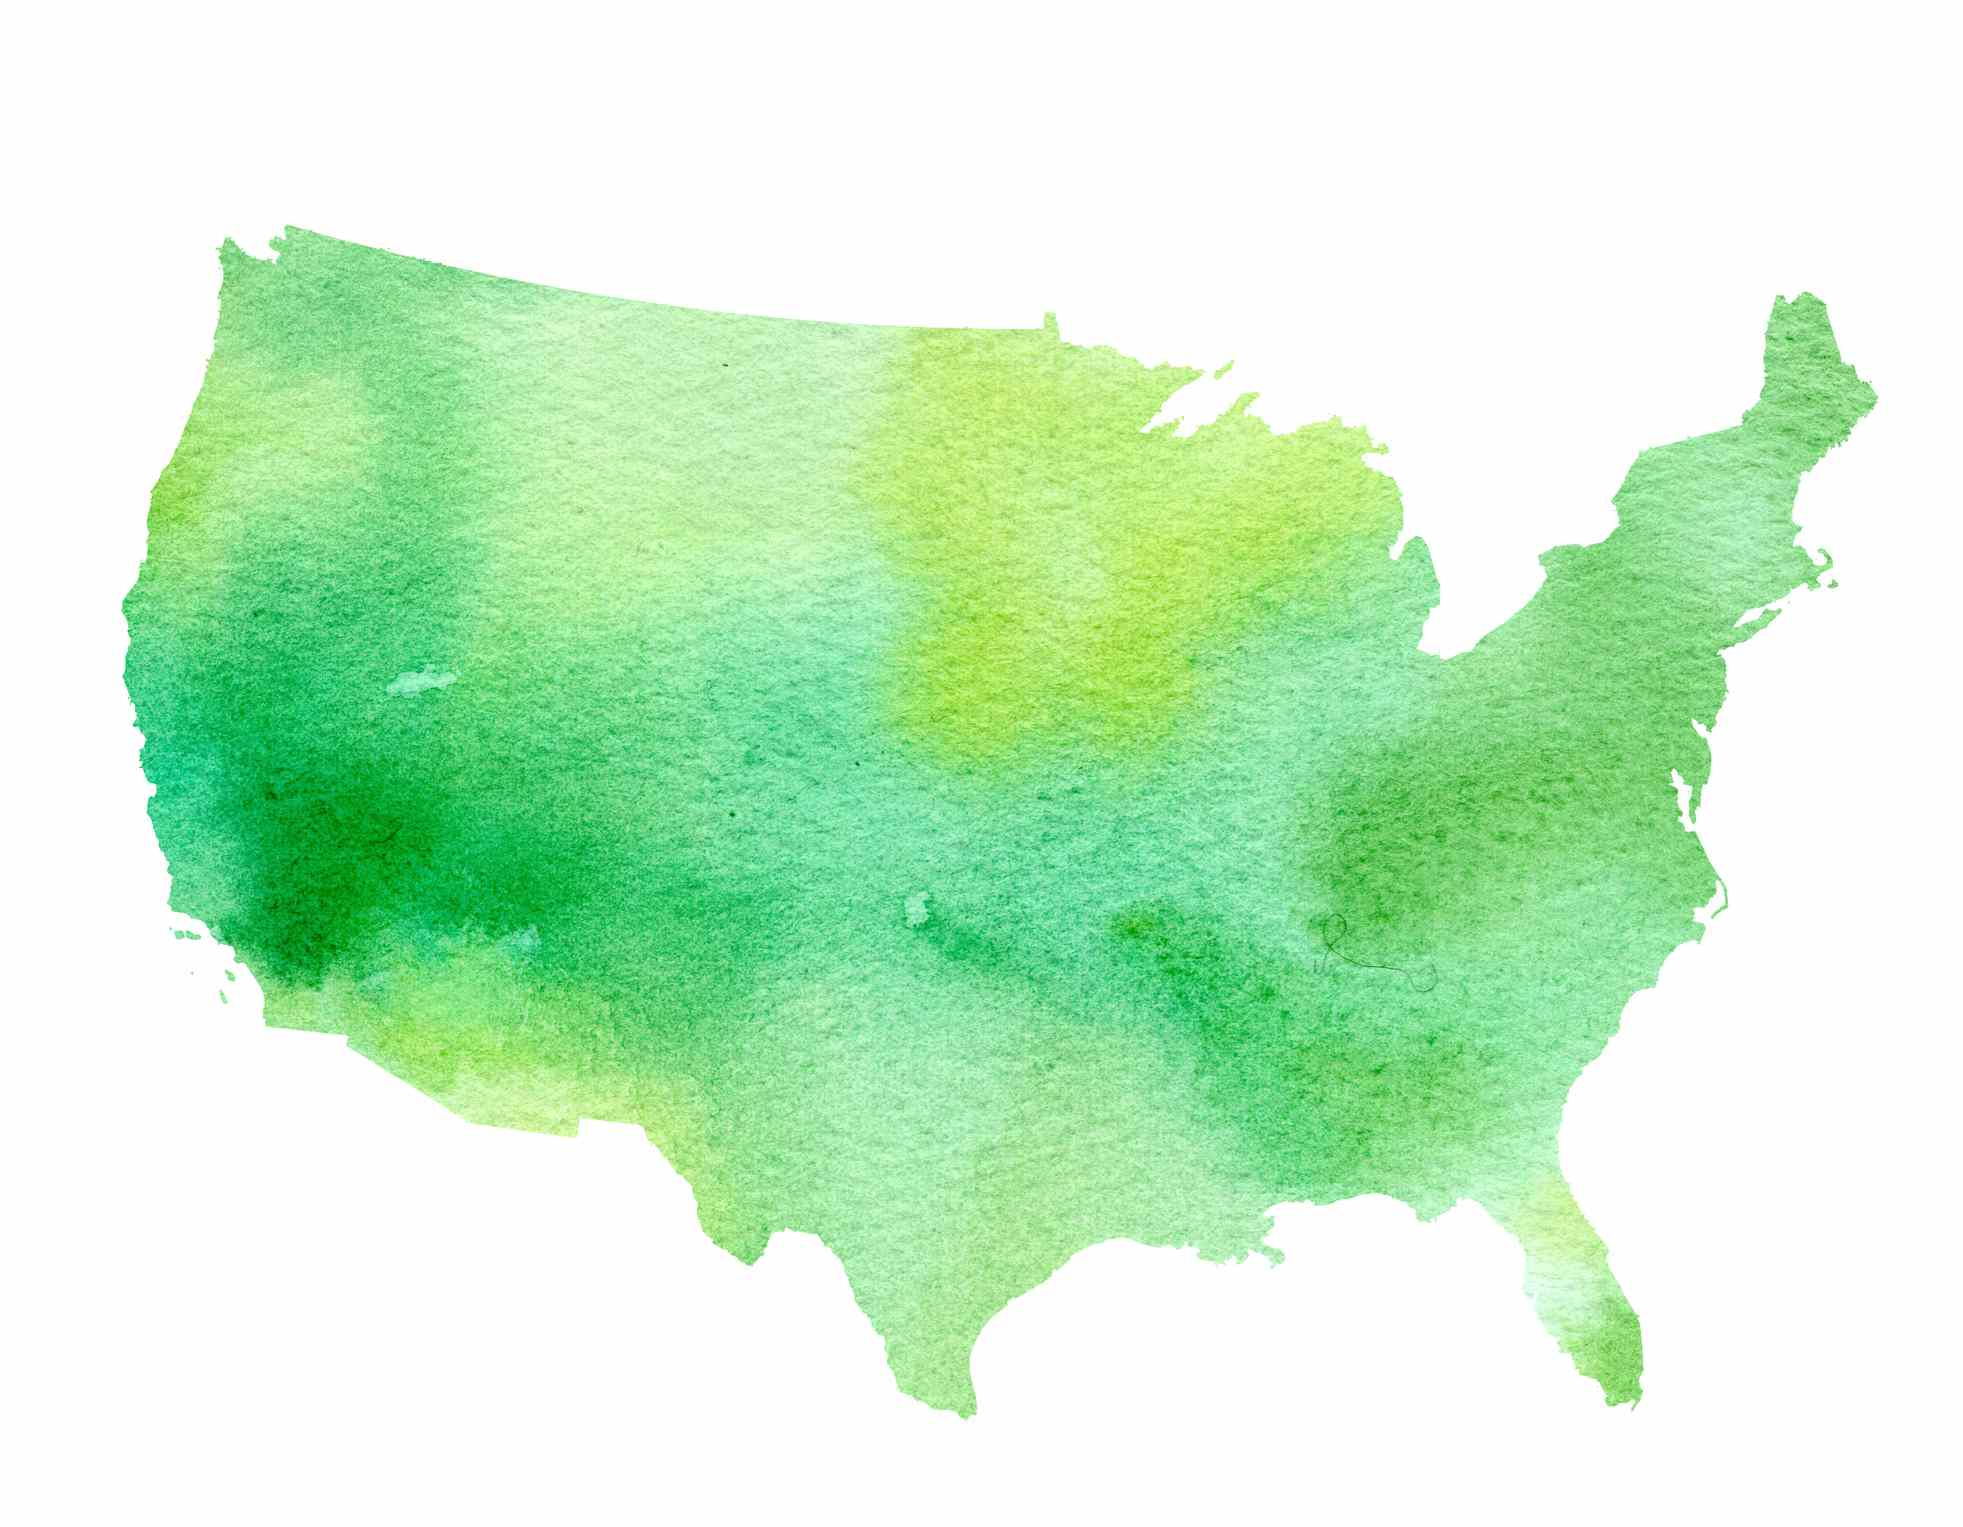 Watercolor painting of the contiguous United States